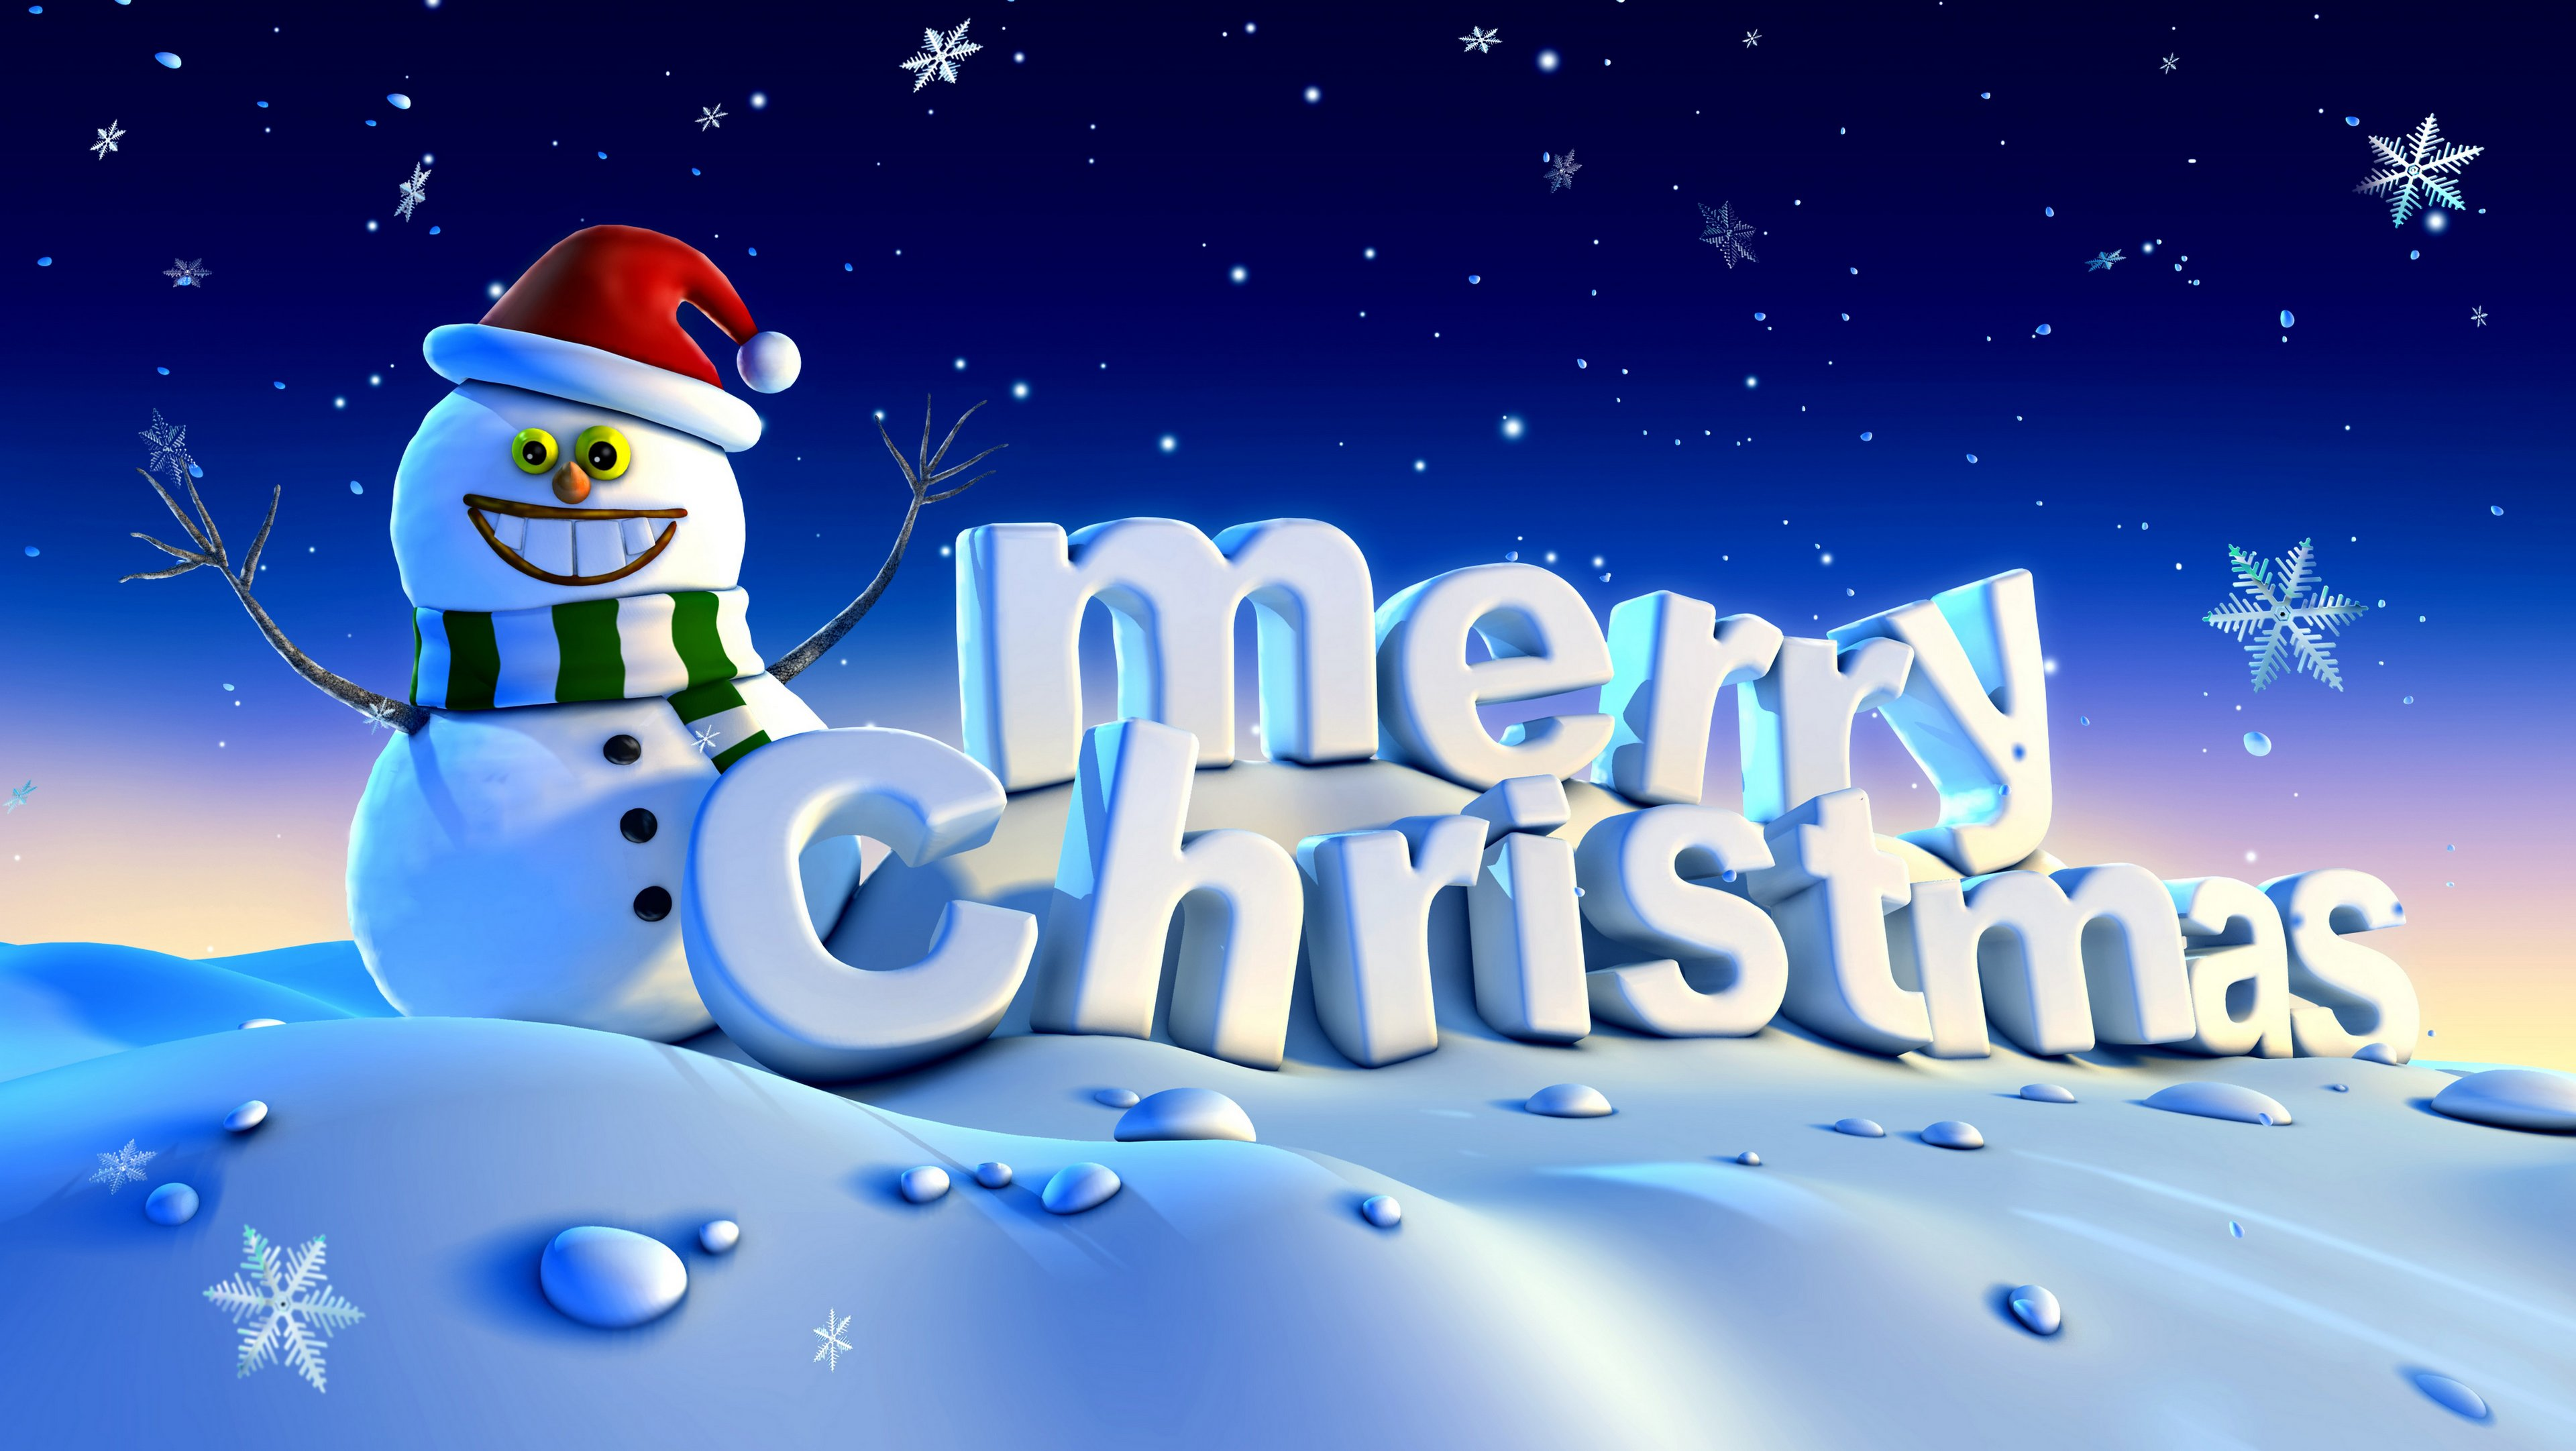 Merry Christmas background high resolution 4k